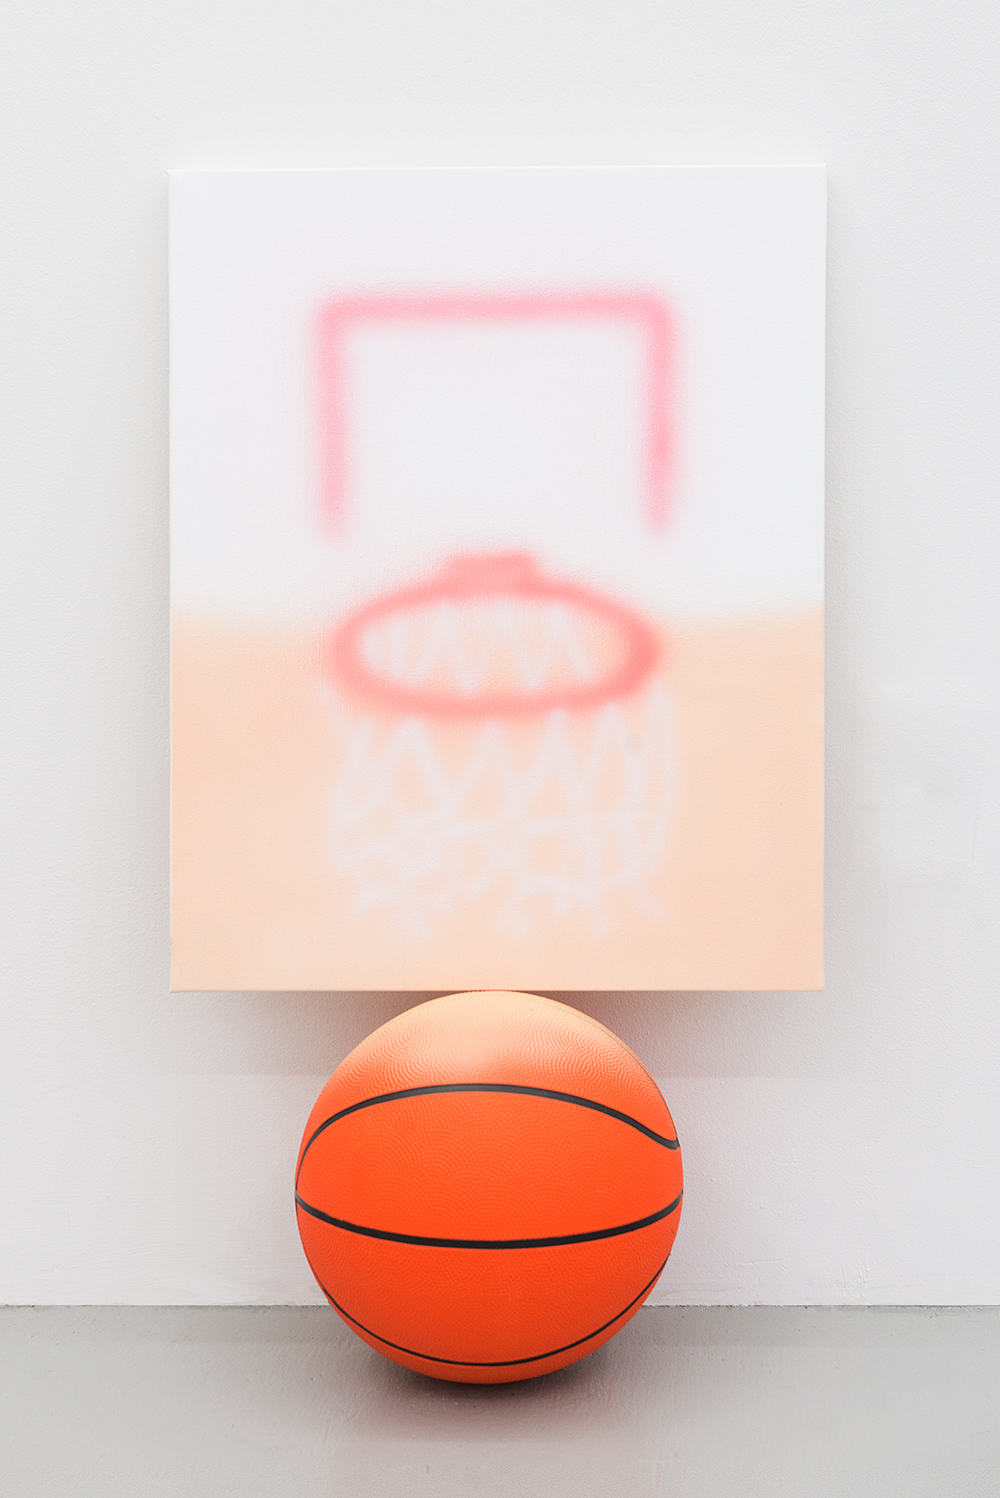 Jonny Paul Gillette goal on basketball ball, 2015 Acrylic polymer on canvas, basketball ball